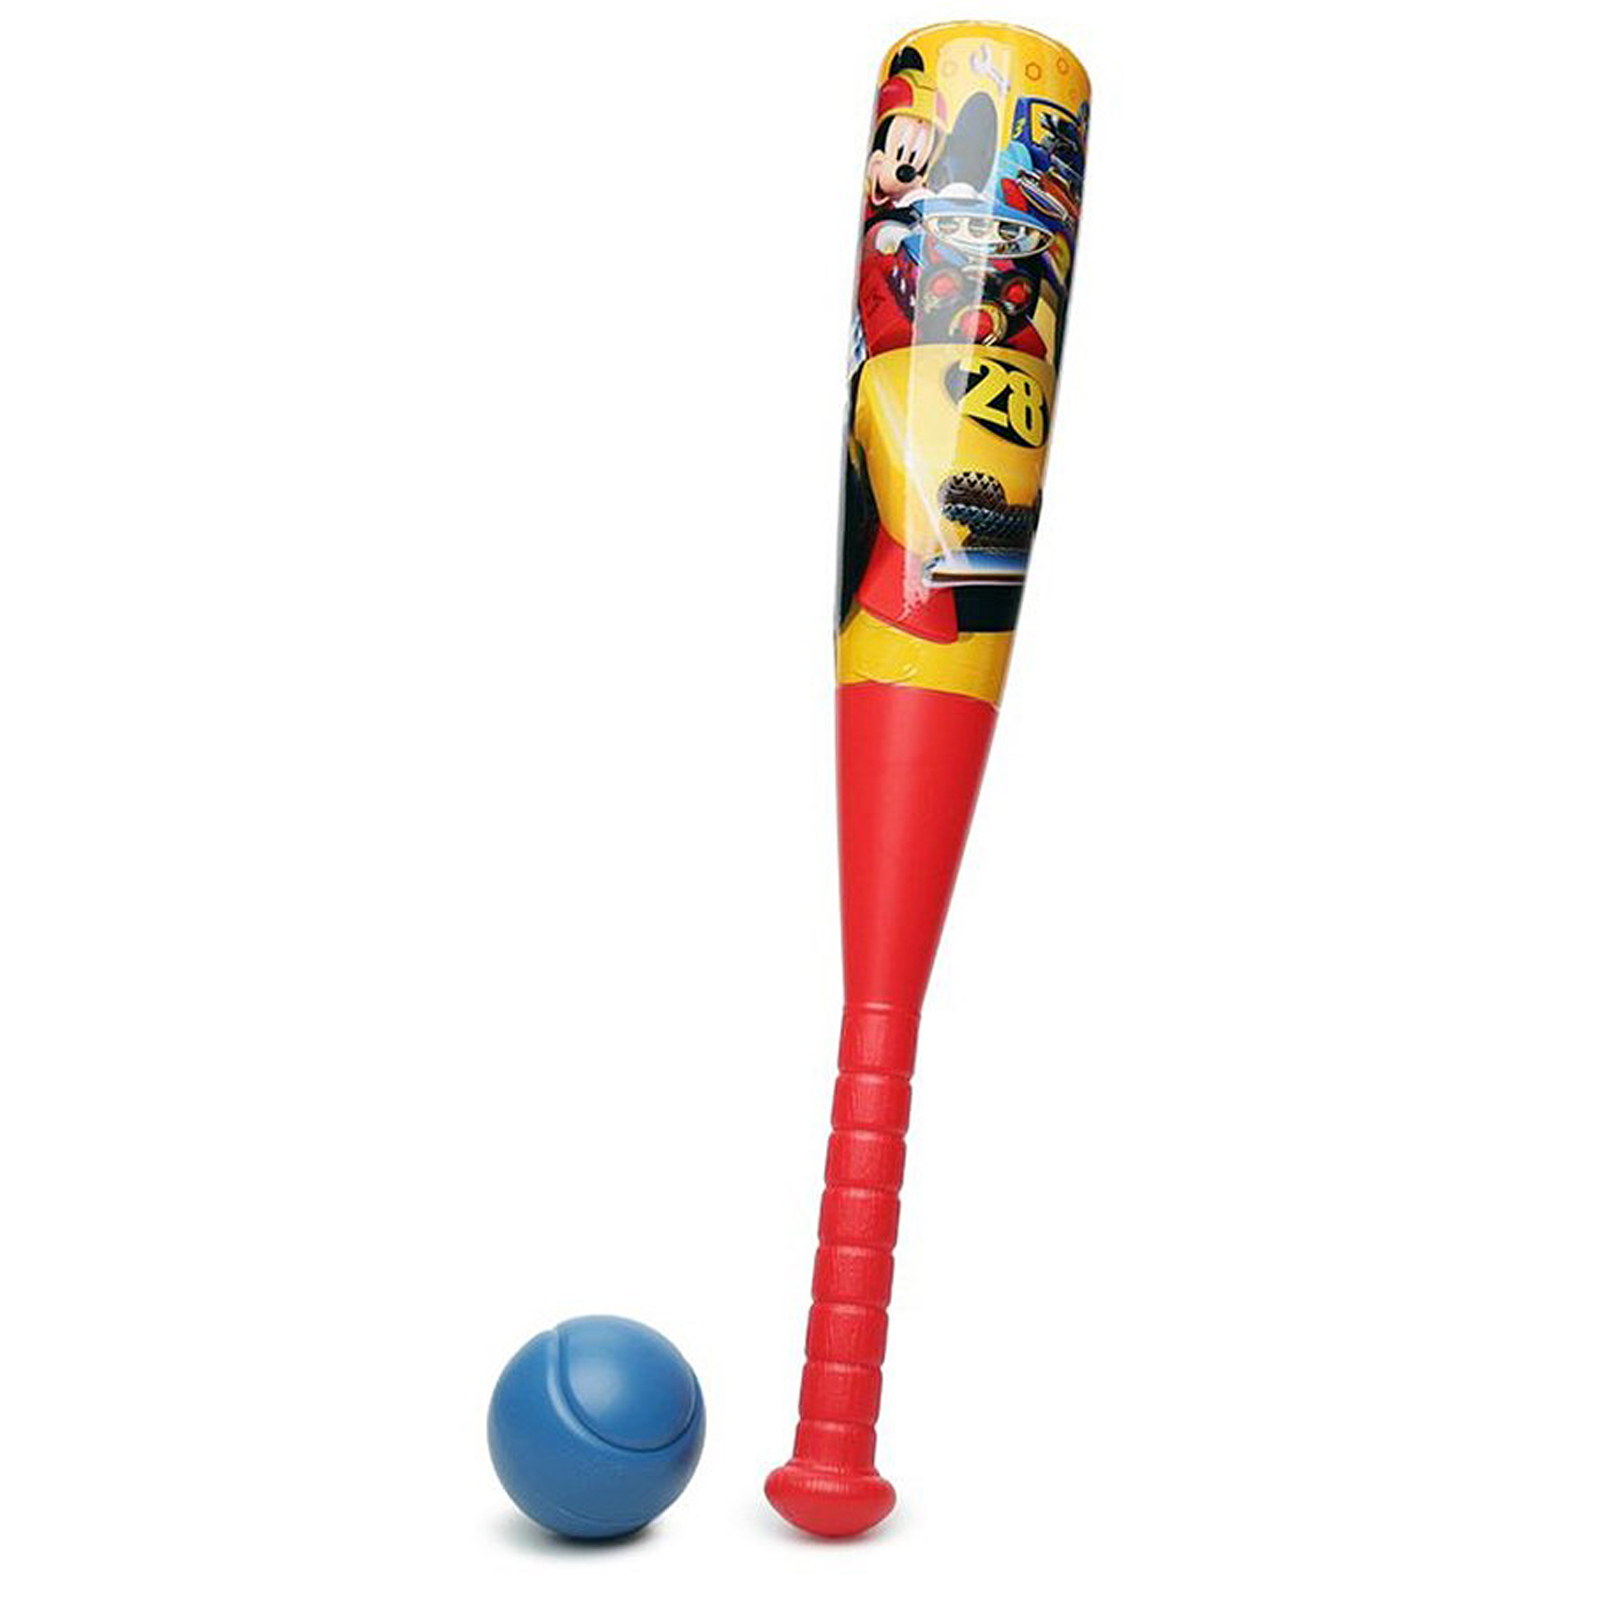 Disney Mickey Mouse Roadsters Baseball and Bat Set